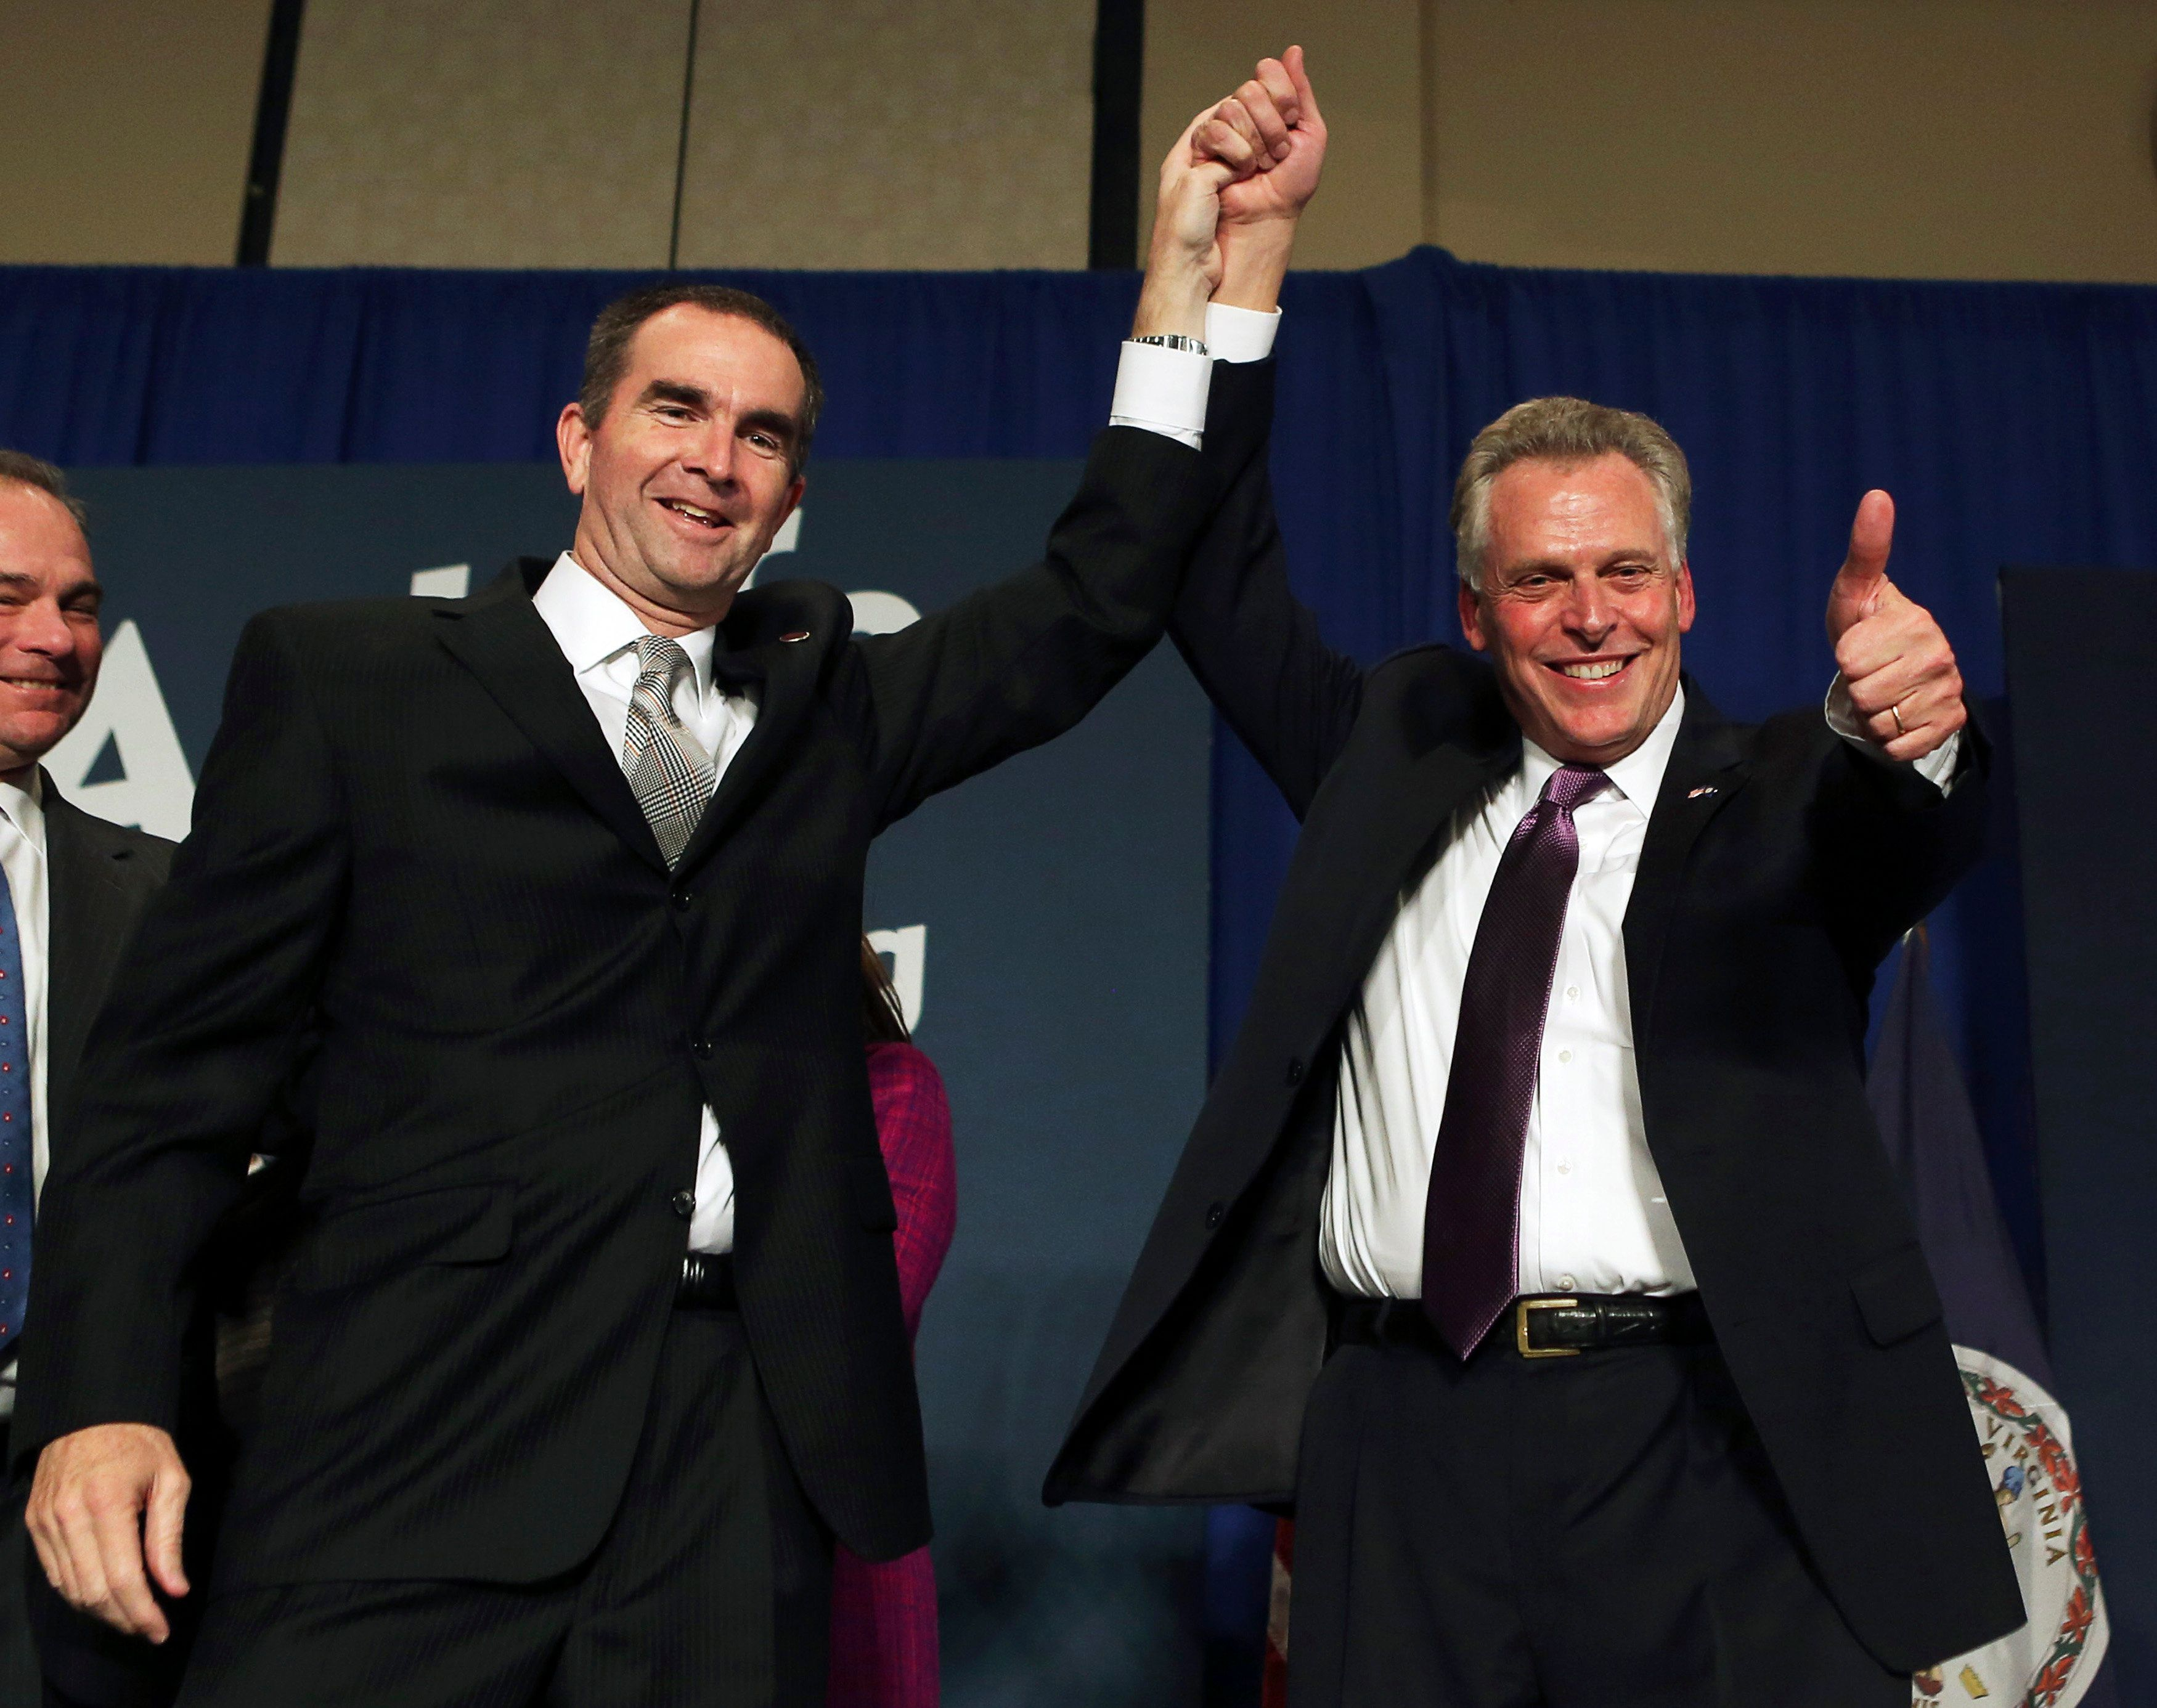 Virginia Democratic governor-elect Terry McAuliffe (R) celebrates with lieutenant governor-elect Ralph Northam (L) at their election night victory rally in Tyson's Corner, Virginia November 5, 2013. McAuliffe defeated Republican candidate Ken Cuccinelli in today's governor's election in Virginia.   REUTERS/Gary Cameron    (UNITED STATES - Tags: POLITICS ELECTIONS)